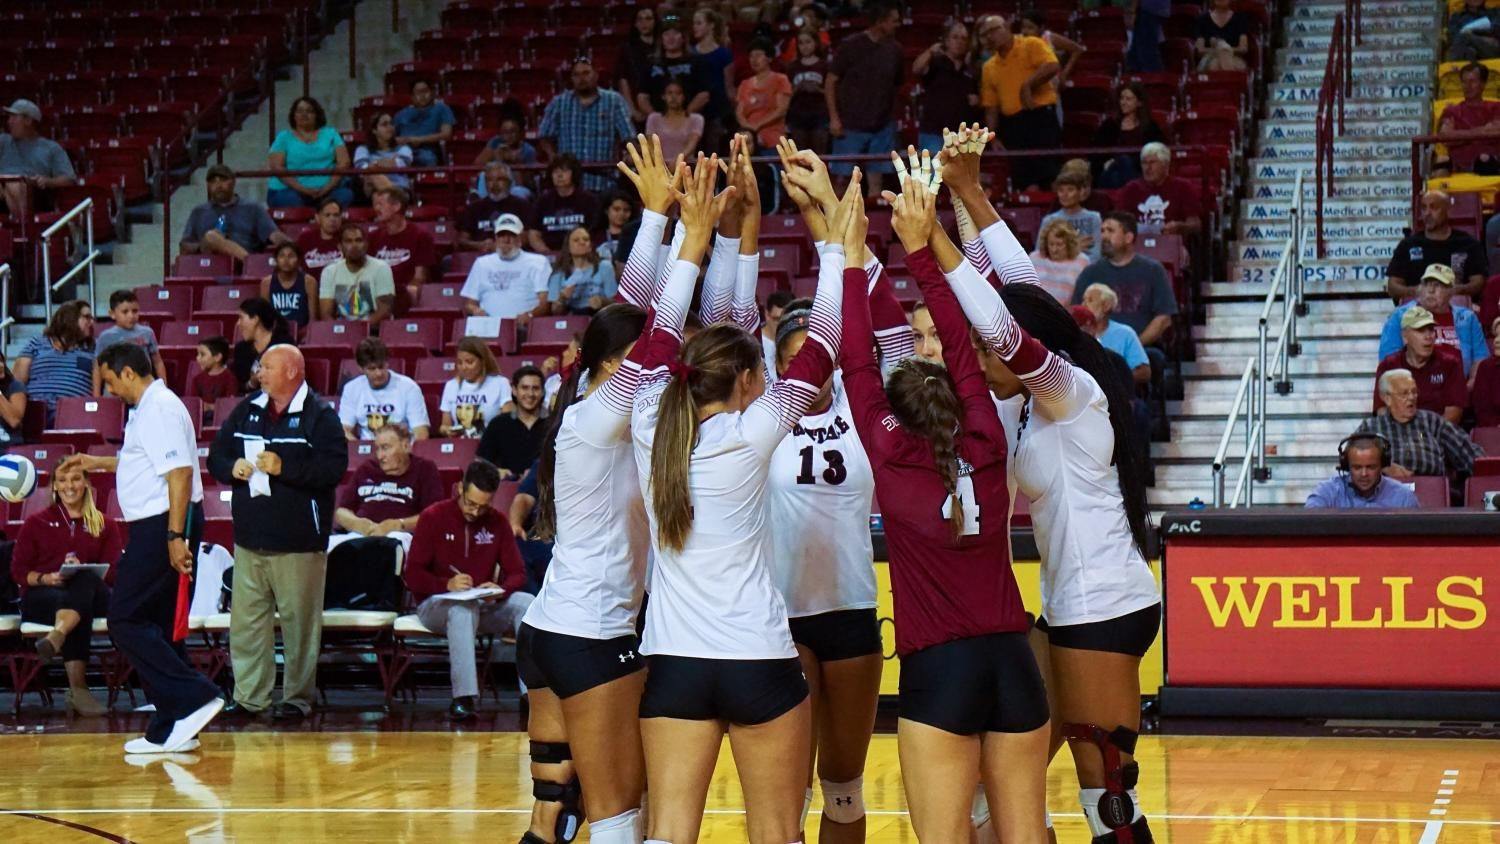 NMSU+Volleyball+during+their+game+against+North+Dakota+on+Thursday+in+the+Pan+American+Center.+The+Aggies+would+drop+the+match%2C+3-2.+